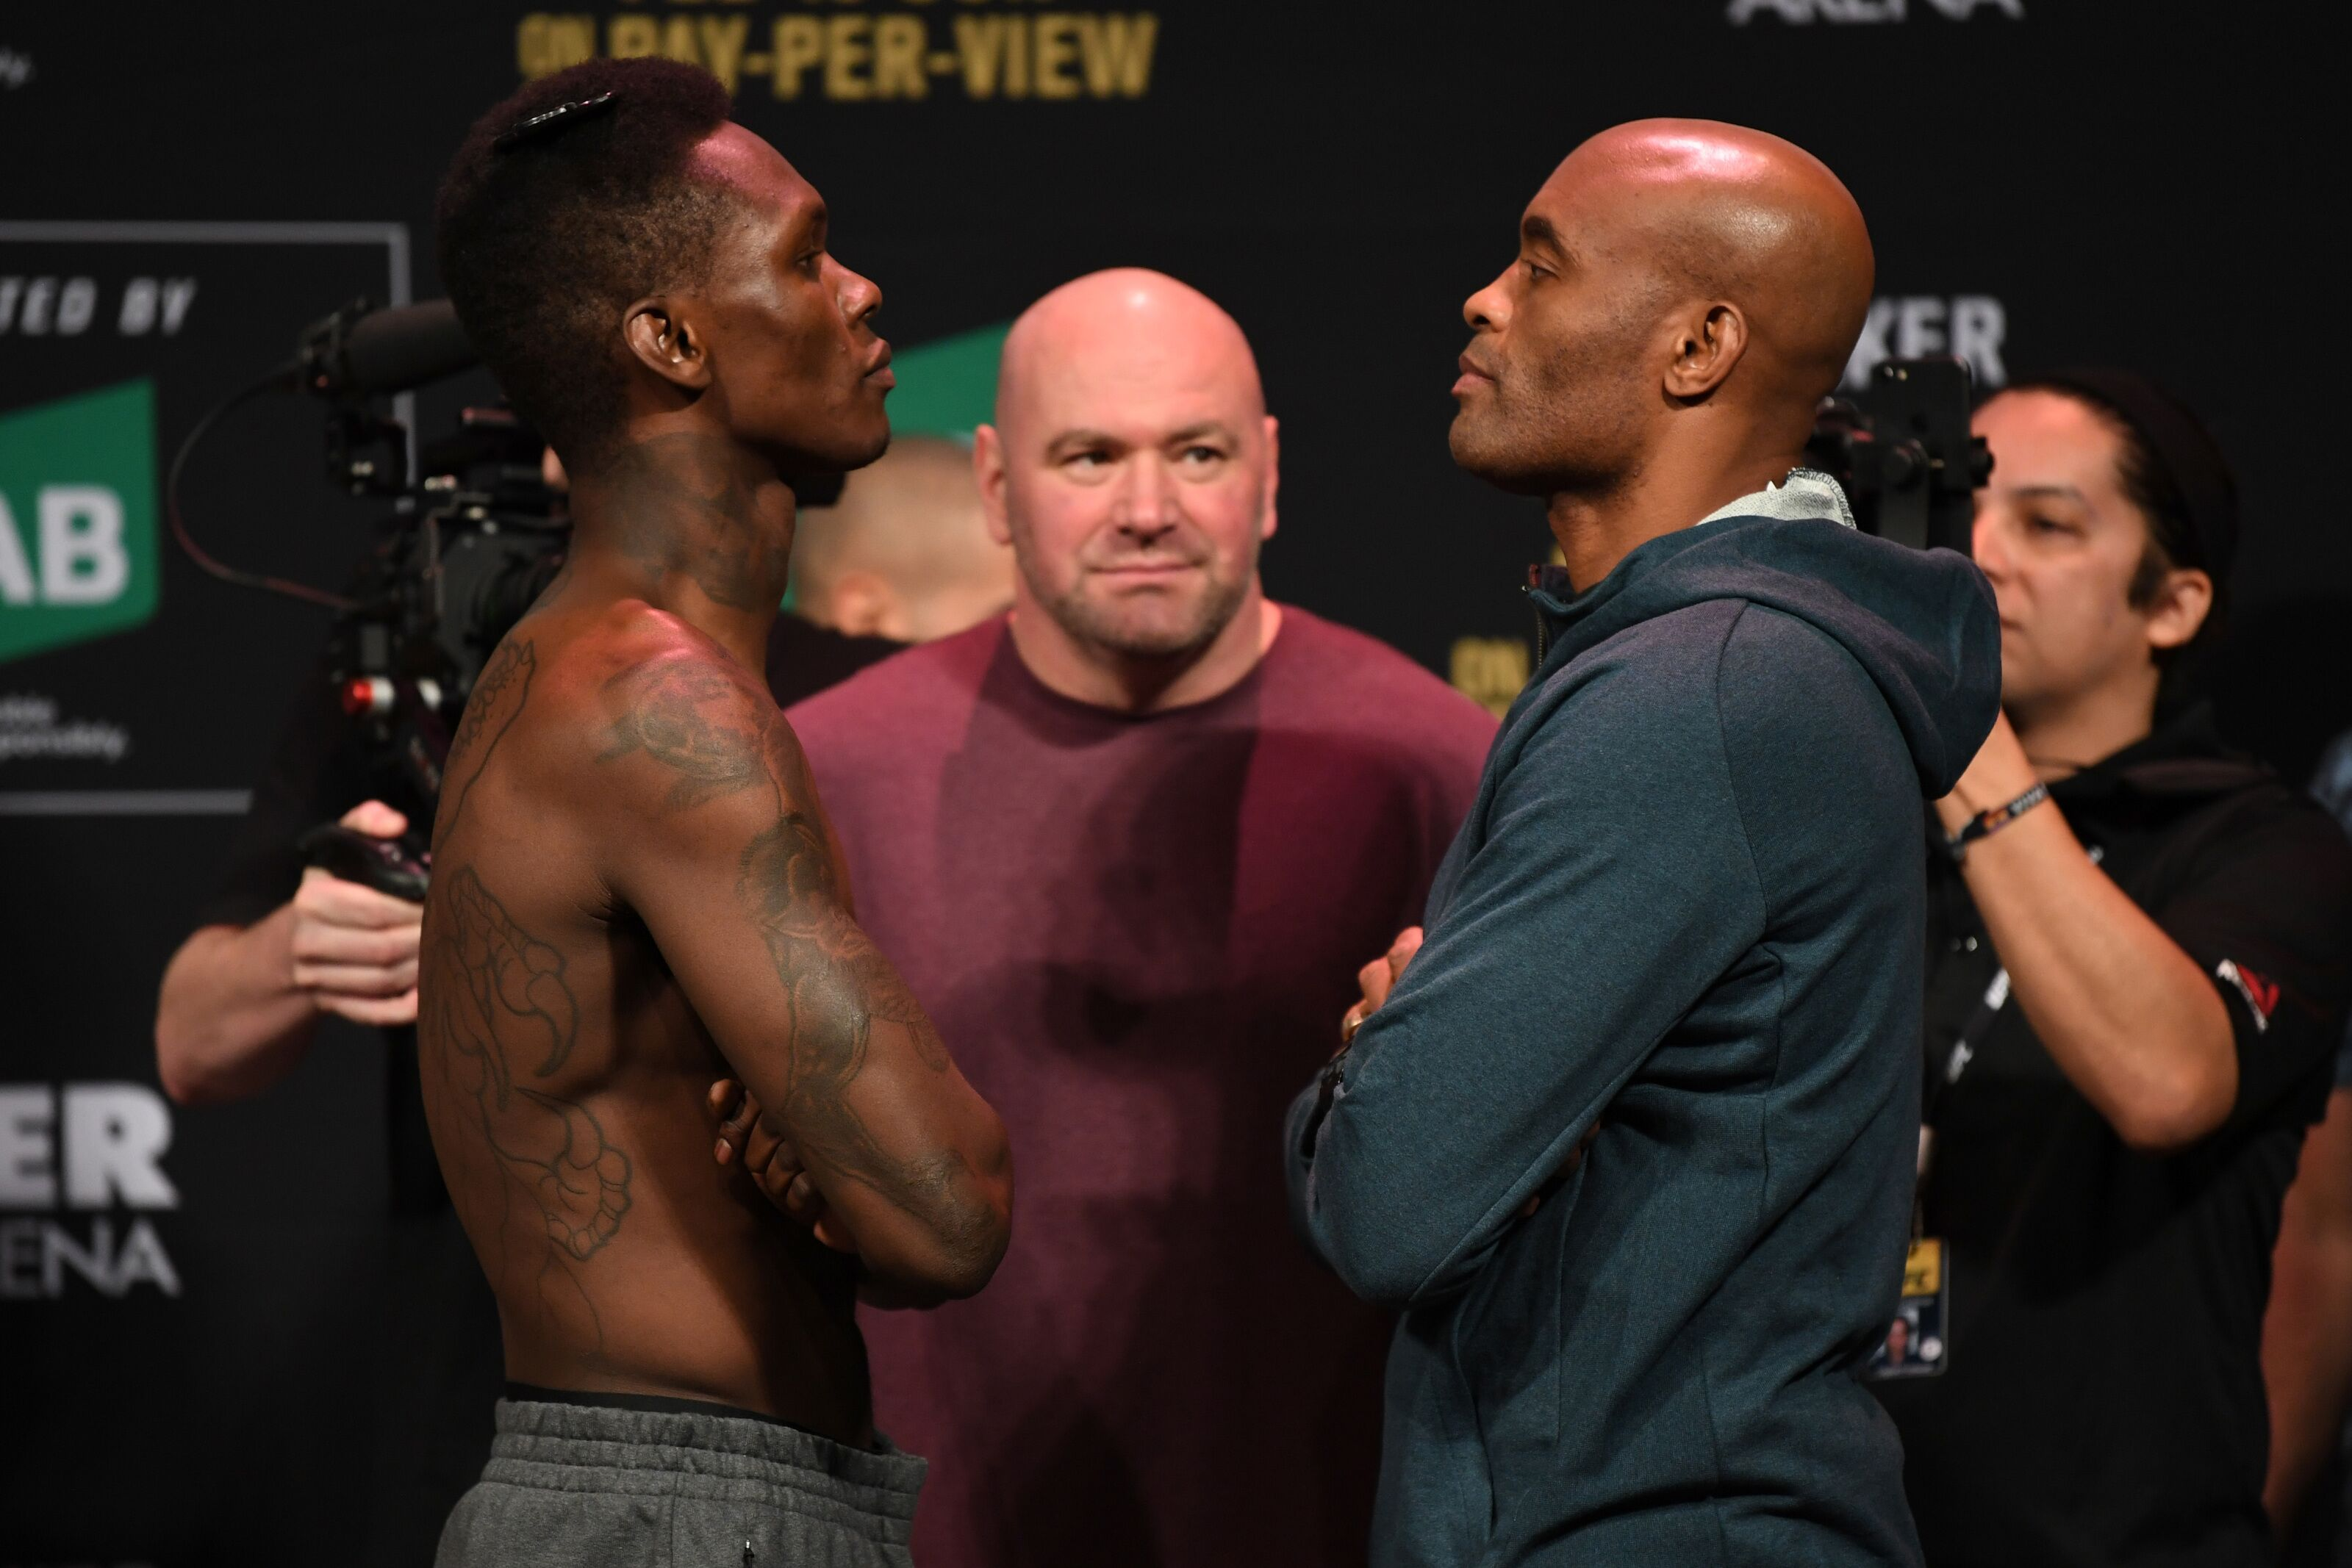 MELBOURNE, AUSTRALIA - FEBRUARY 09: (L-R) Israel Adesanya of New Zealand and Anderson Silva of Brazil face off during the UFC 234 weigh-in at Rod Laver Arena on February 09, 2019 in the Melbourne Australia. (Photo by Jeff Bottari/Zuffa LLC/Zuffa LLC via Getty Images)